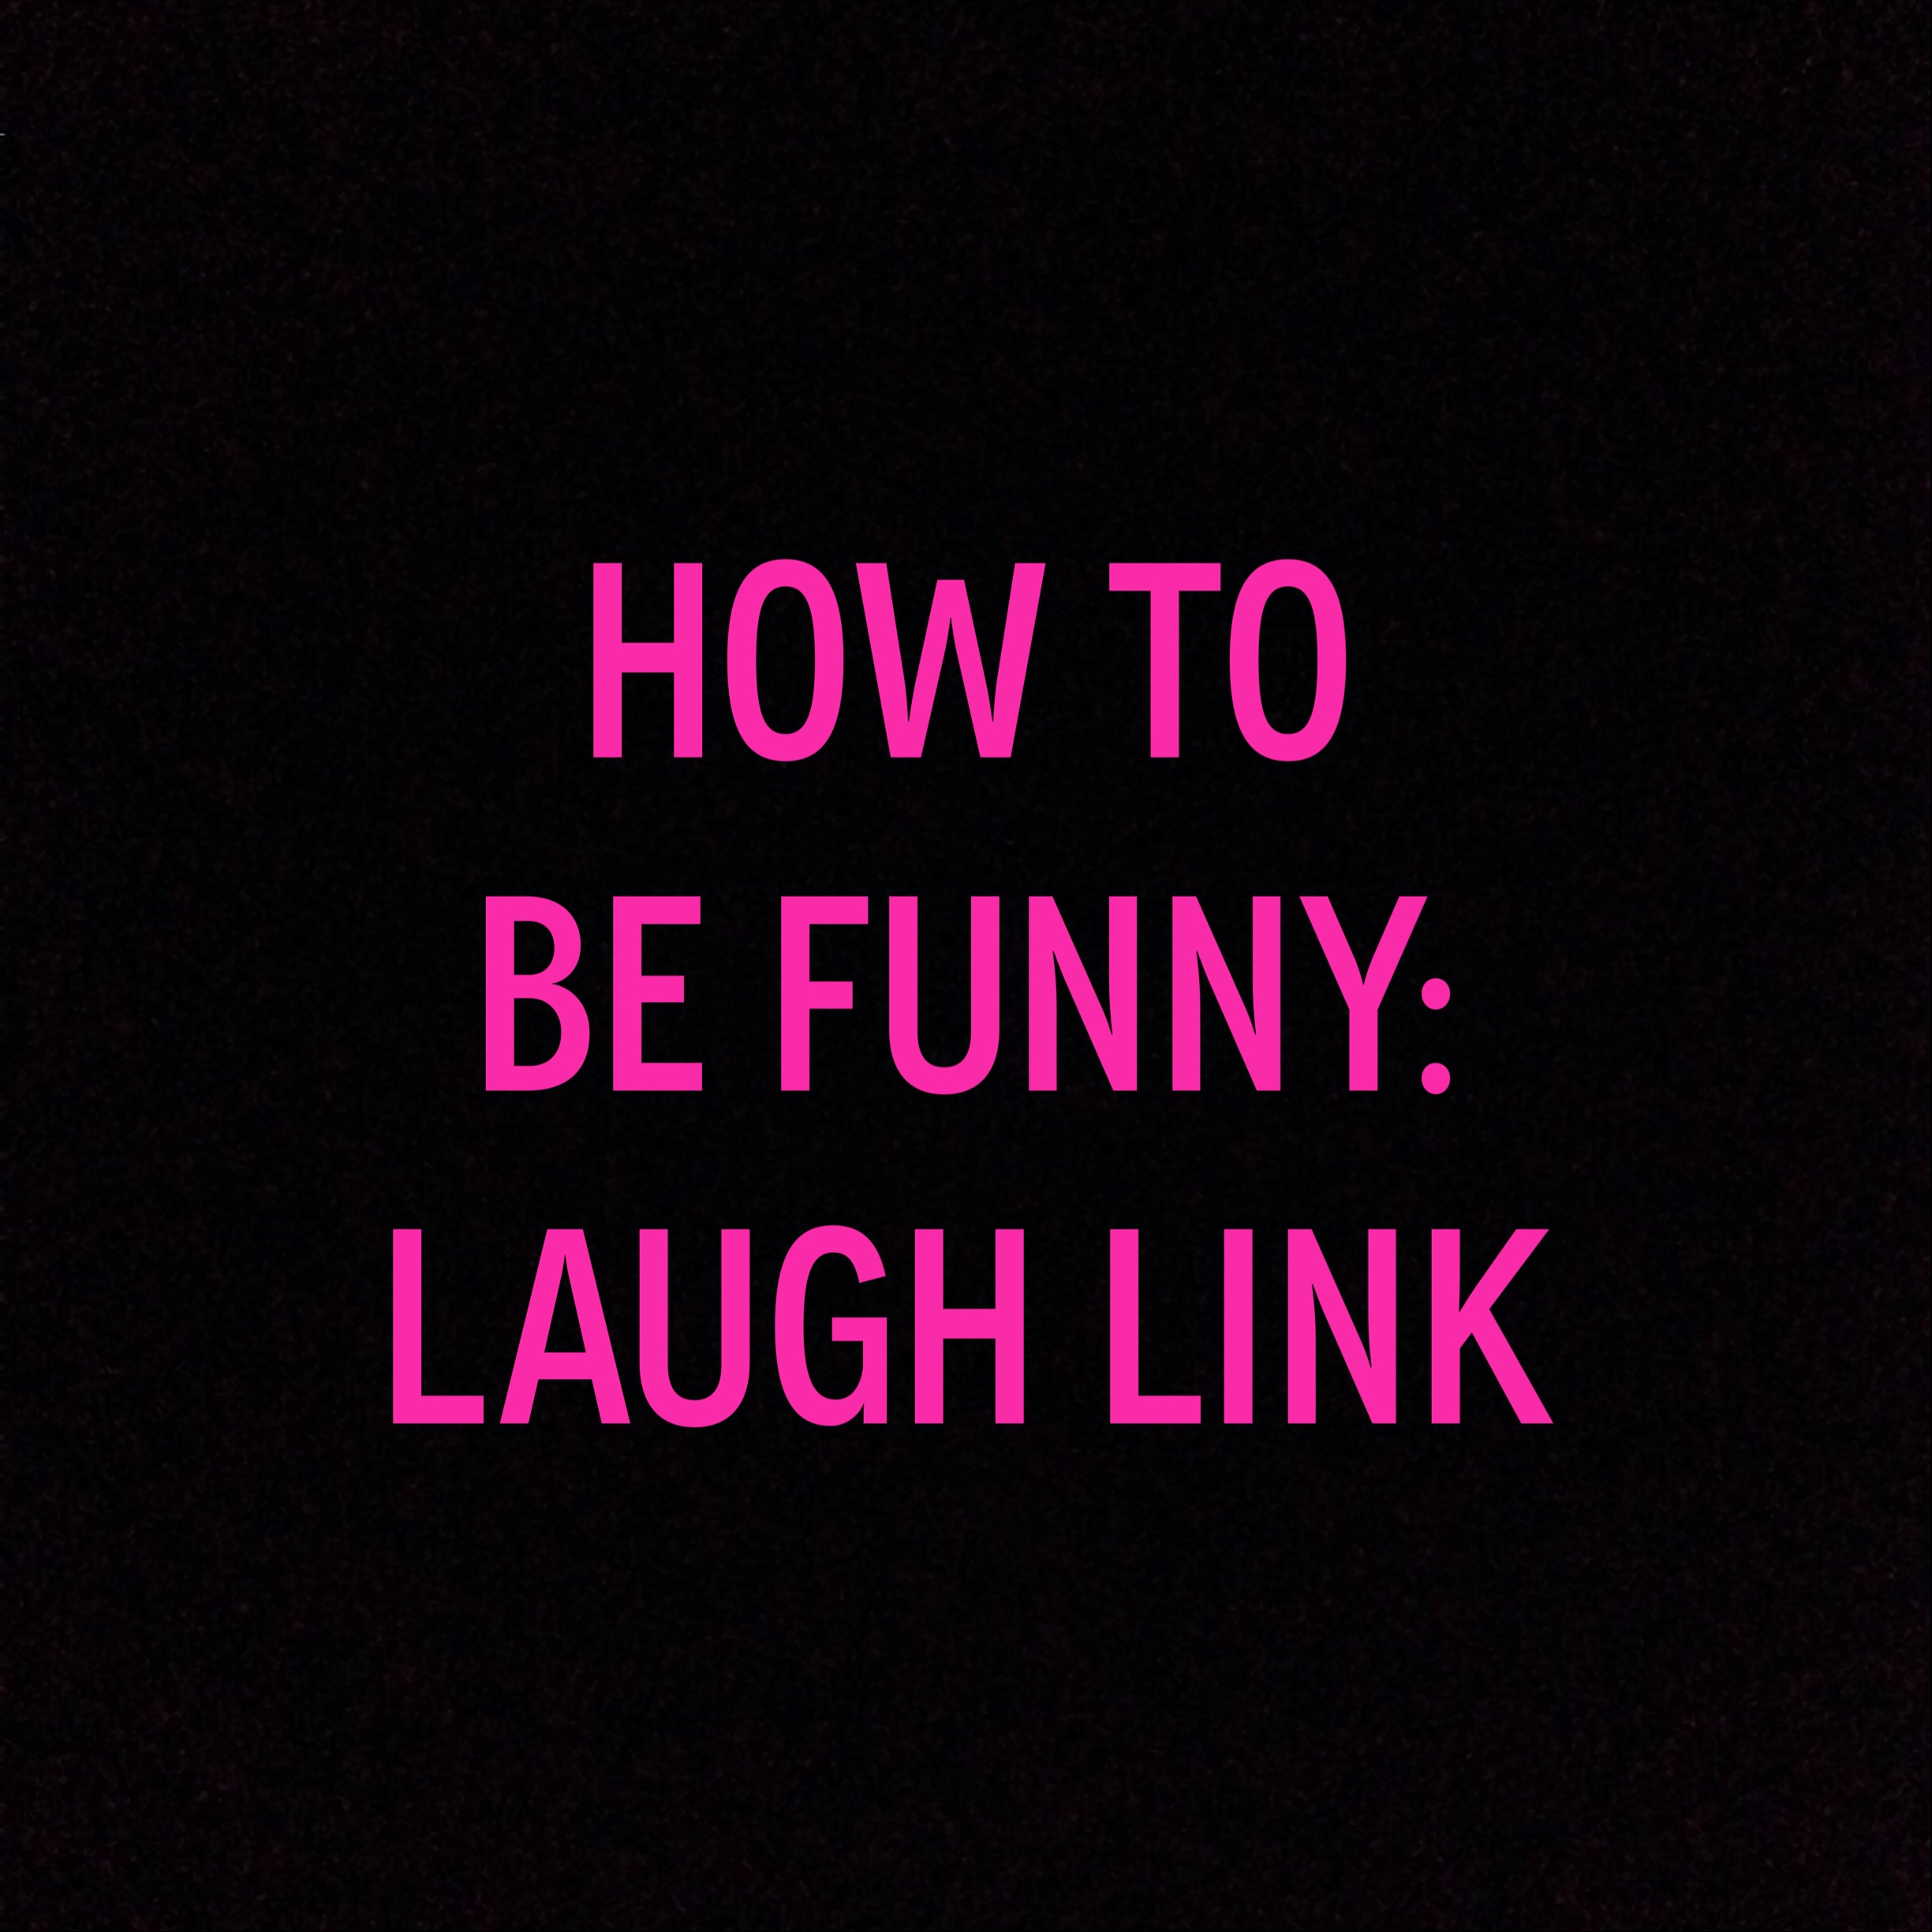 How To Be Funny: Laugh Link